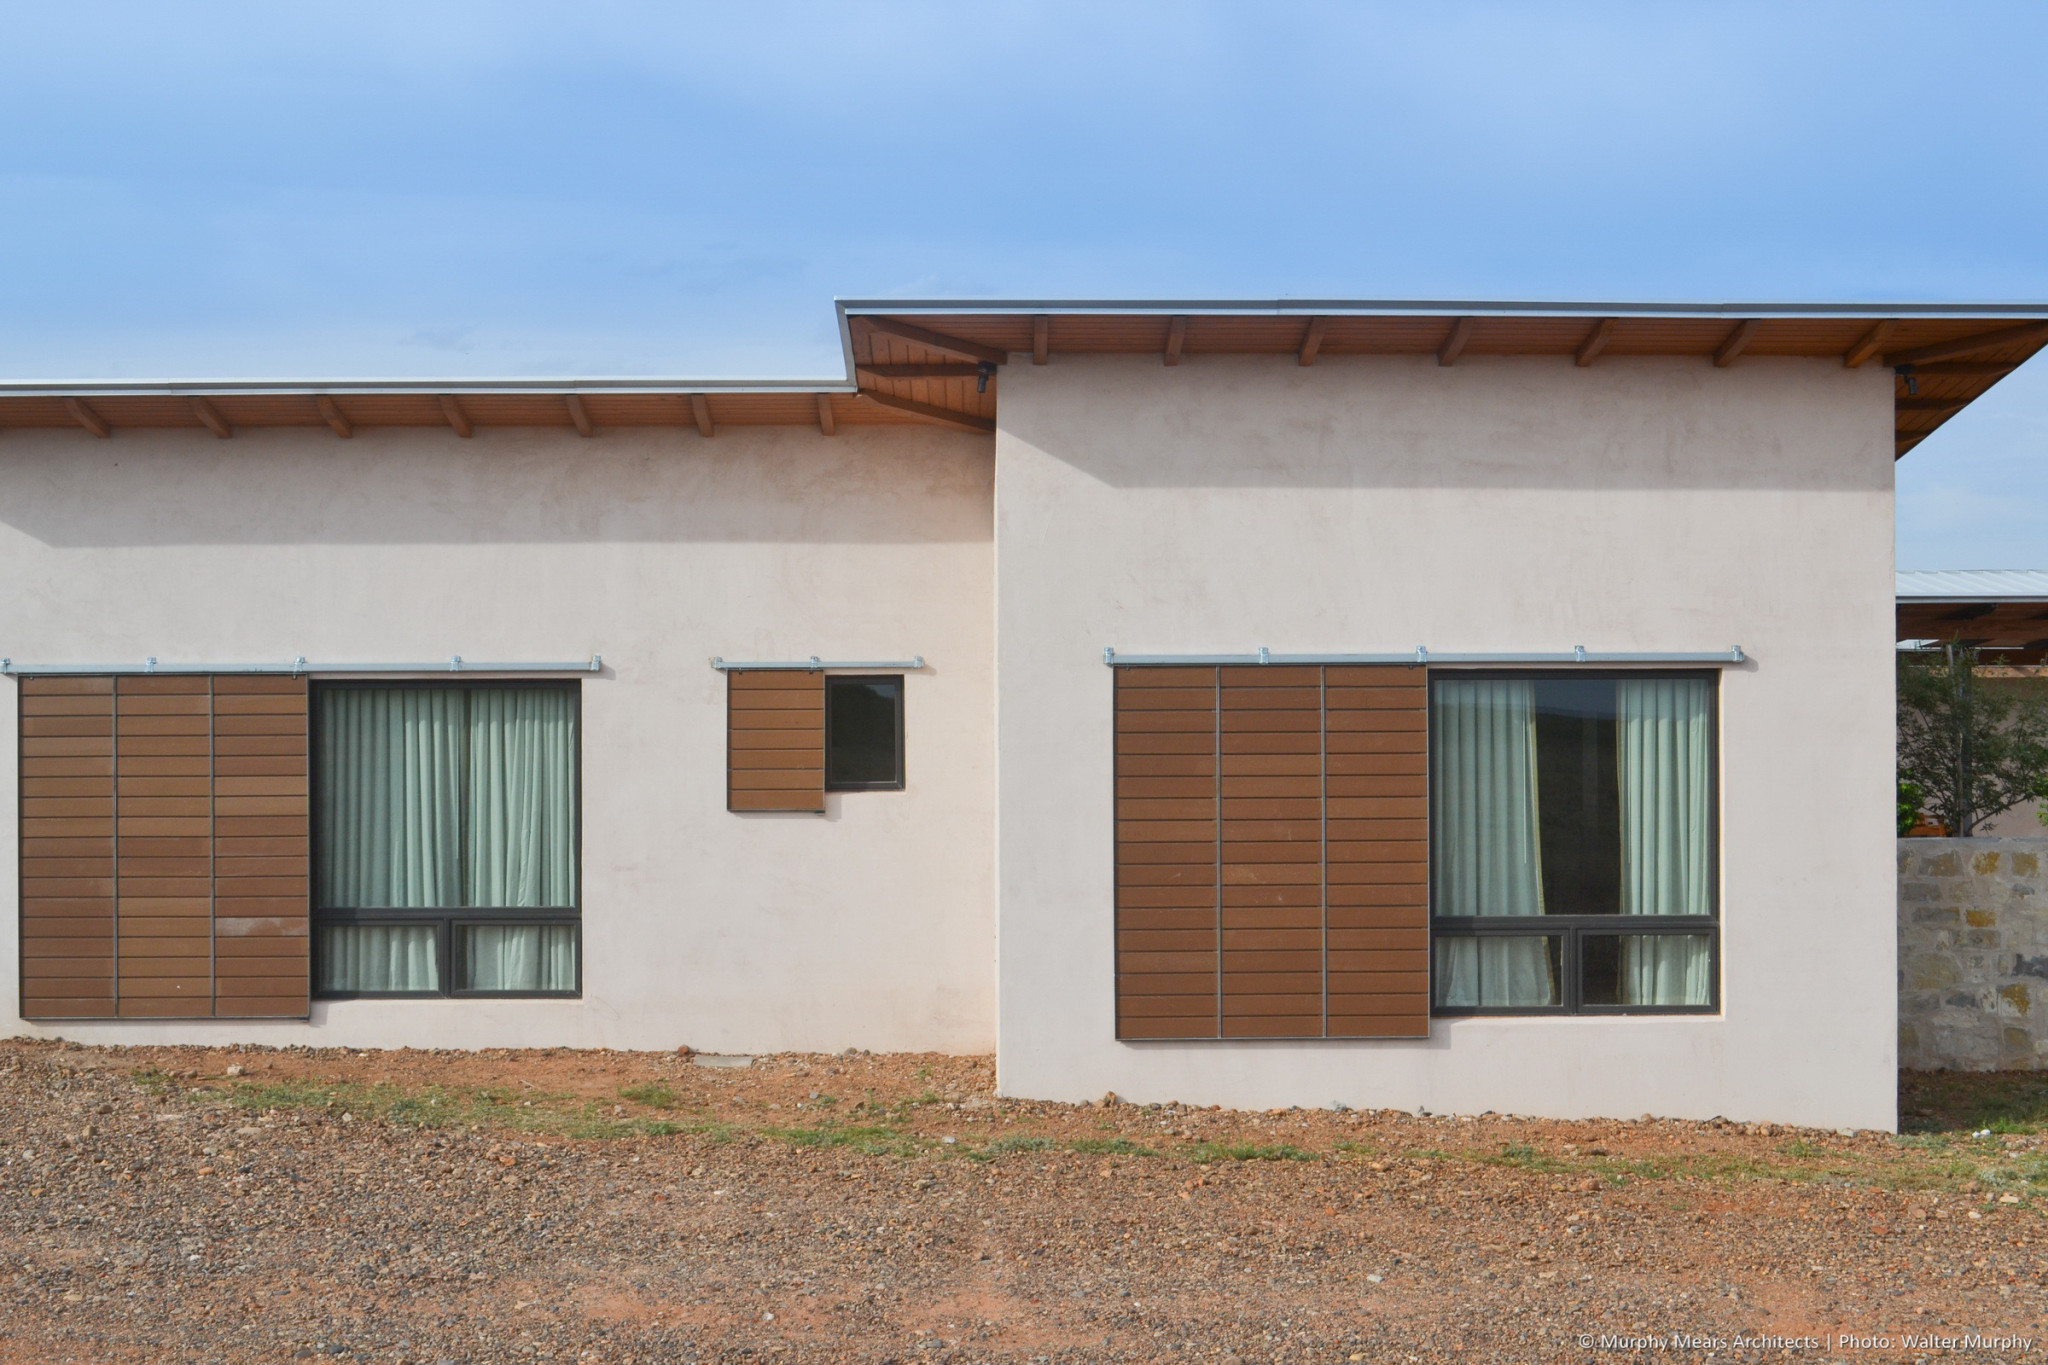 la habra stucco finish walls with galvanized steel and composite wood plank rolling window shutters